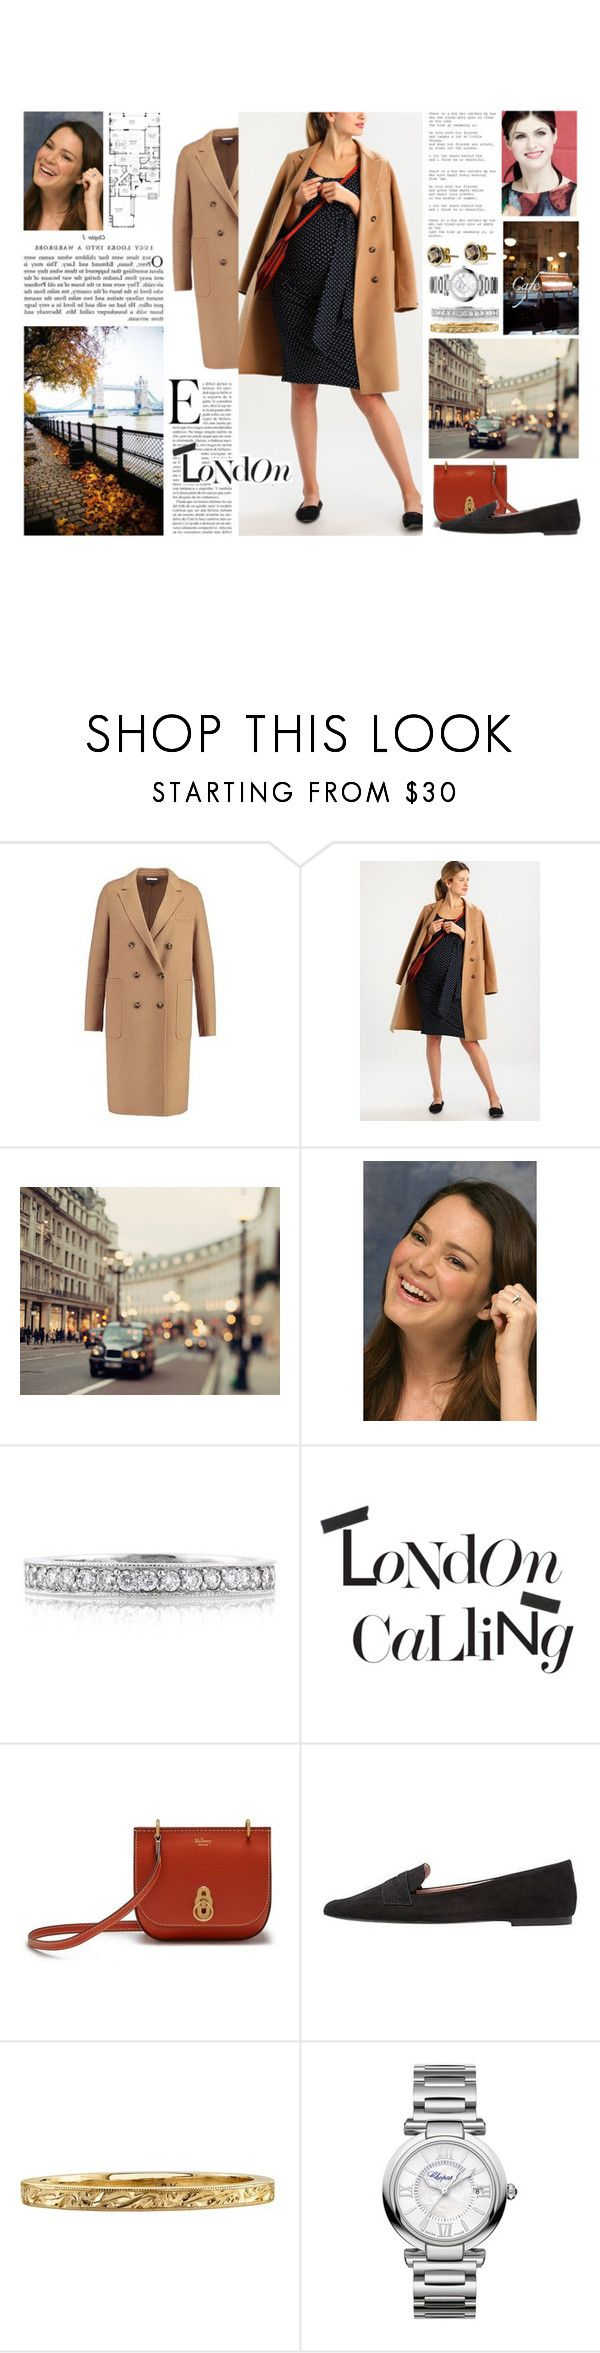 """""""Untitled #202"""" by duchessq ❤ liked on Polyvore featuring Aaiko, DuÅ¡an, WALL, Mark Broumand, Damaris, Mulberry, Envie de Fraise and Chopard"""